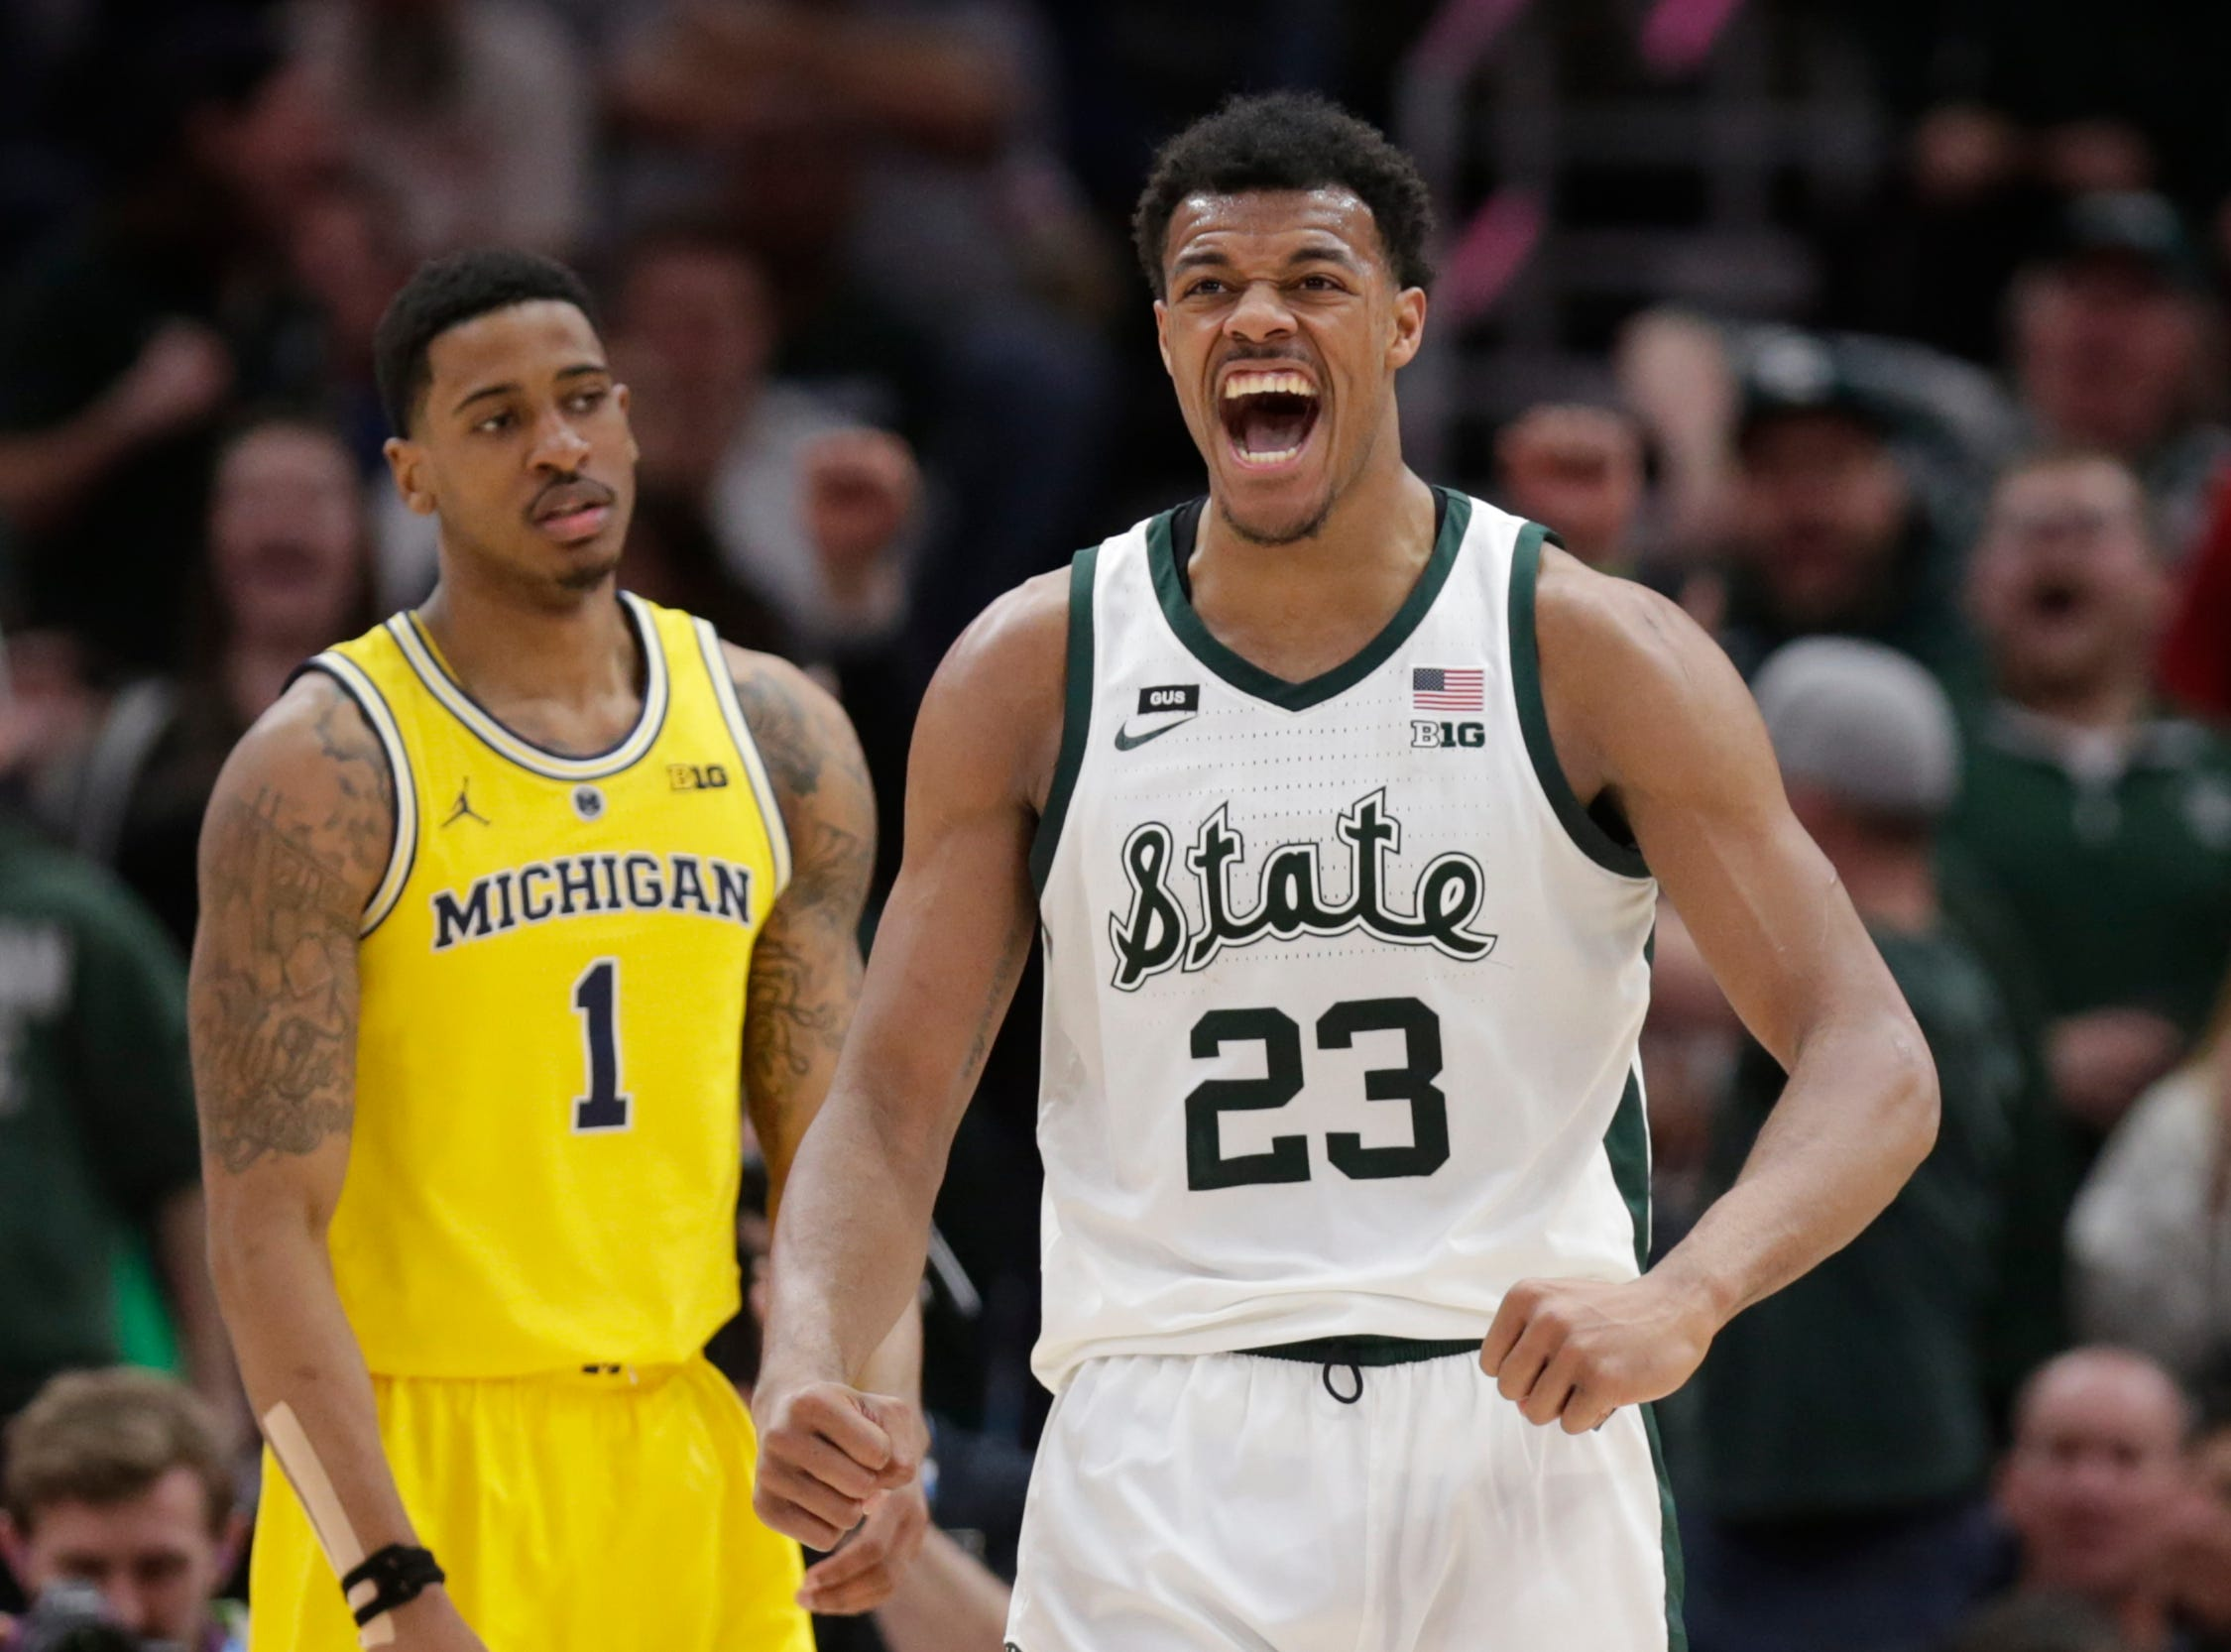 Michigan State's Xavier Tillman (23) reacts during the second half of an NCAA college basketball championship game against Michigan in the Big Ten Conference tournament, Sunday, March 17, 2019, in Chicago.